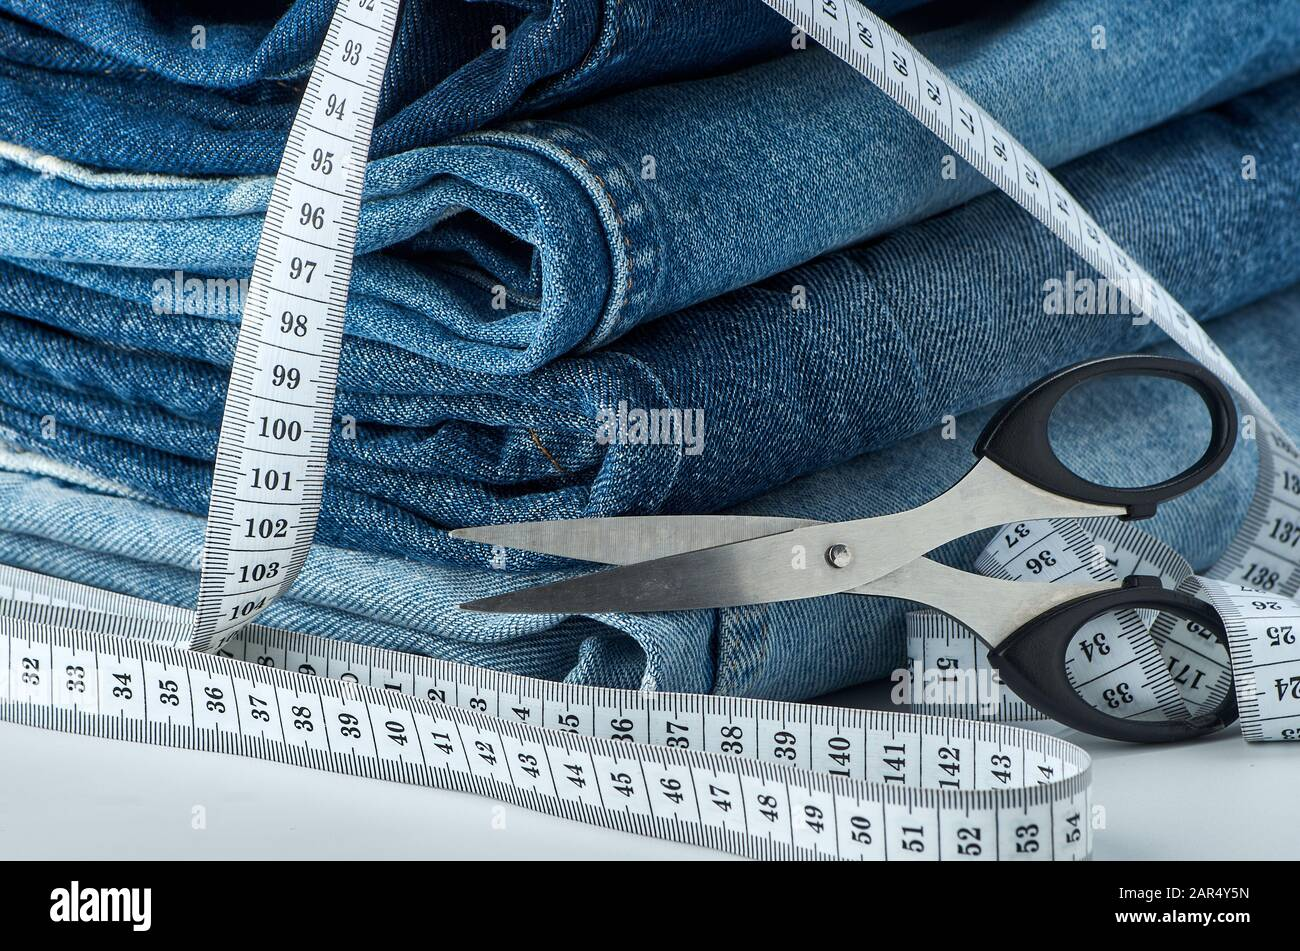 Blue cotton jeans folded on a table with a tape measure and scissors on a white isolated background. Stock Photo